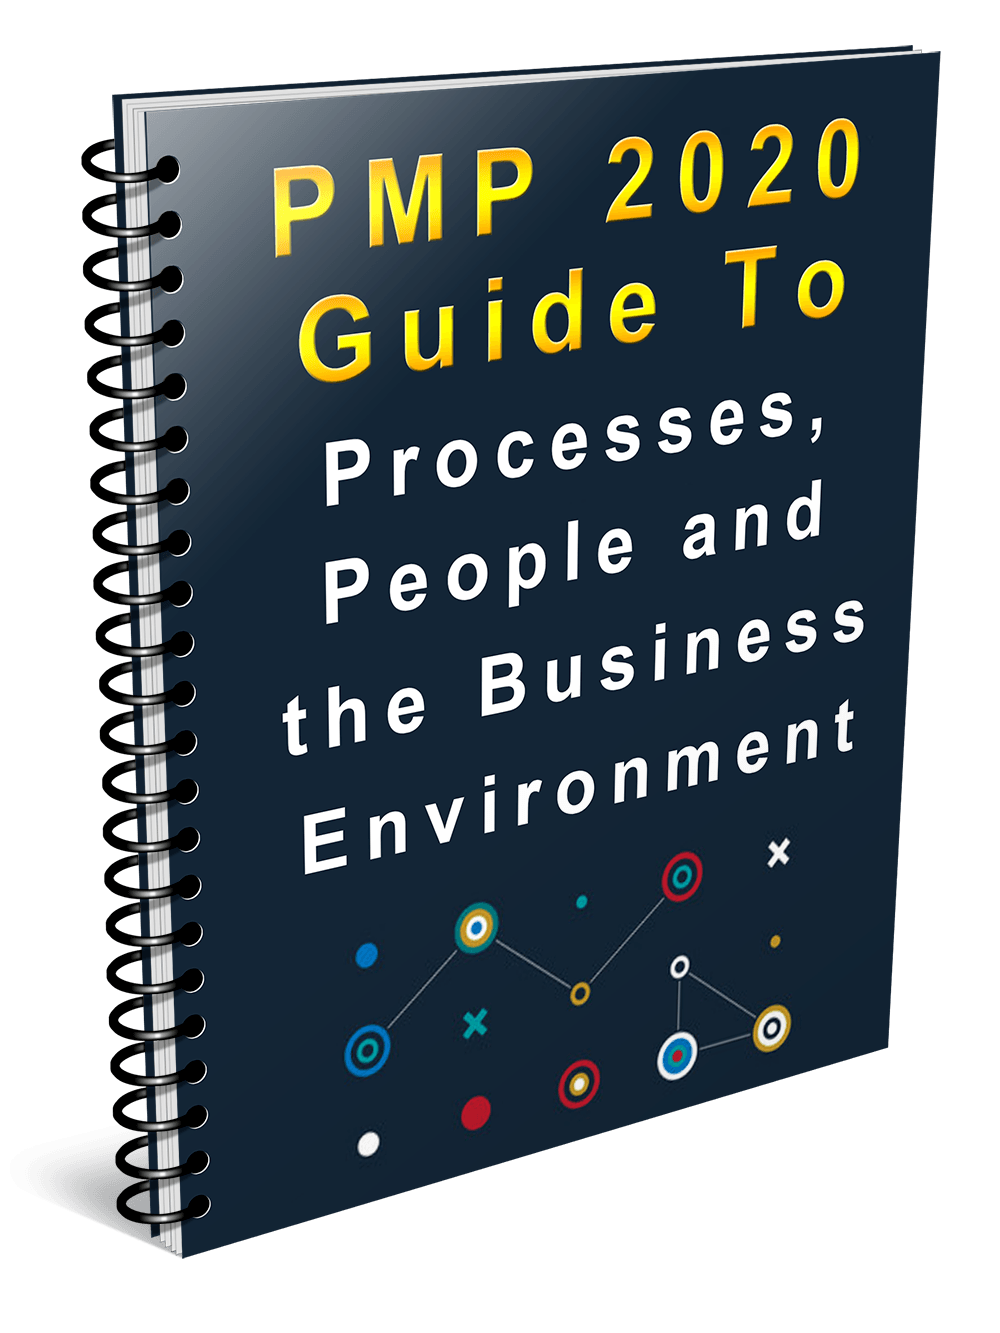 Blending PMBOK and Scrum for PMP